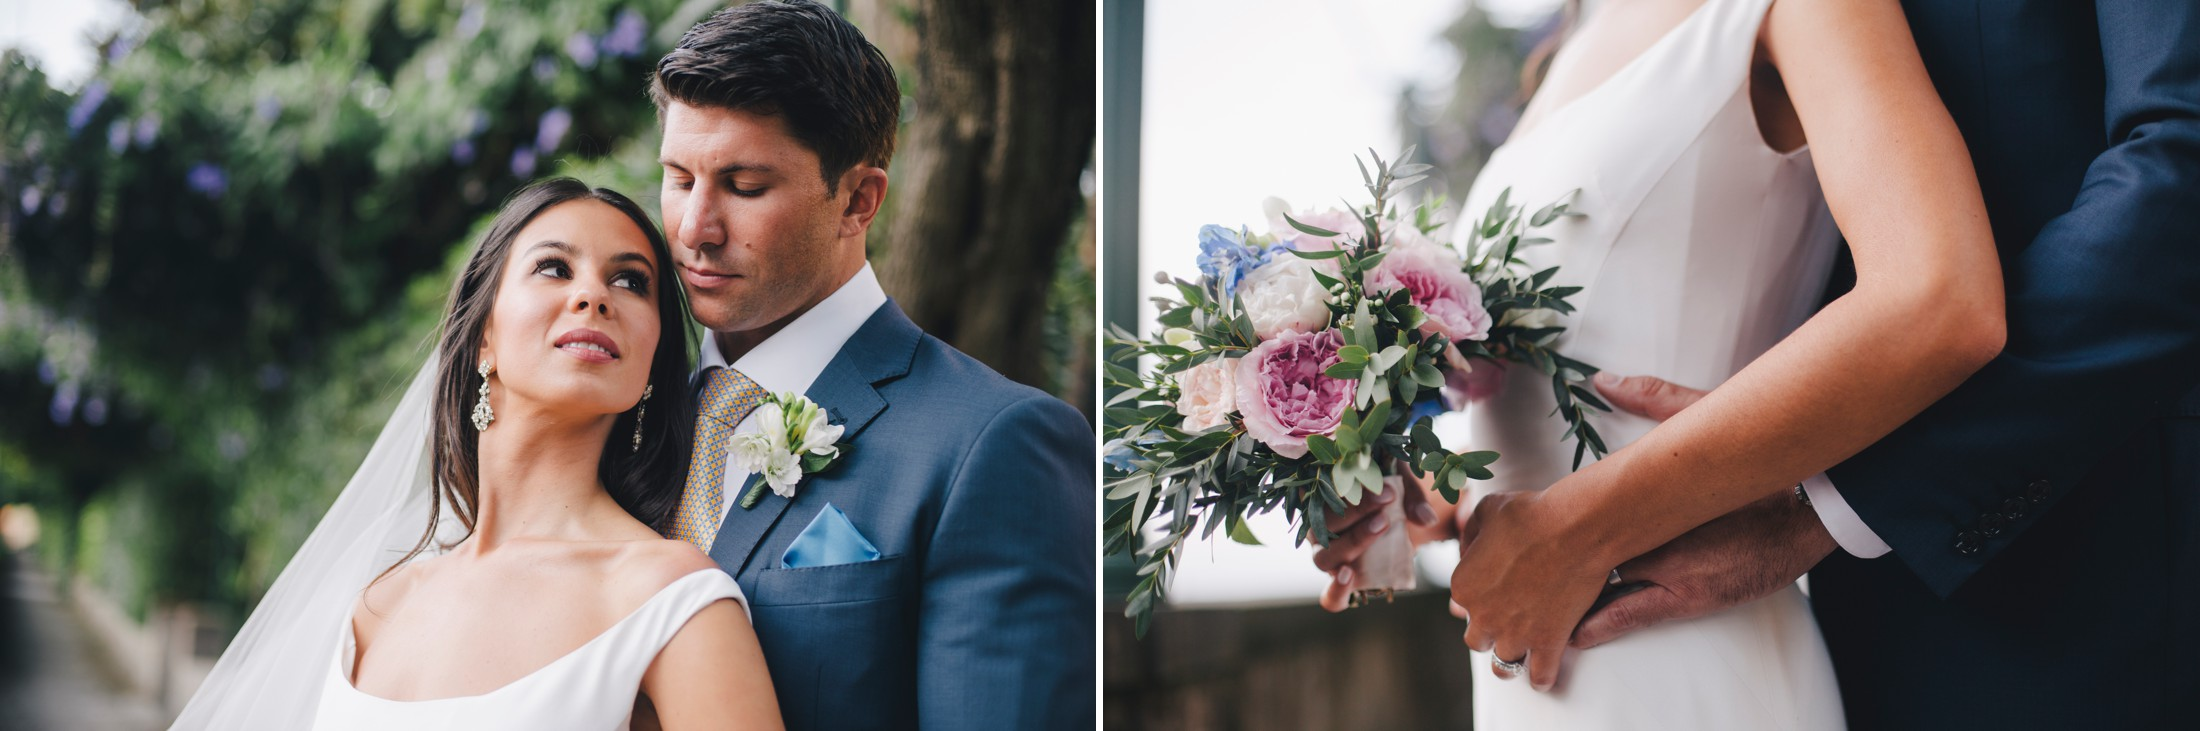 wedding in sorrento collage bride and groom's portrait and wedding bouquet